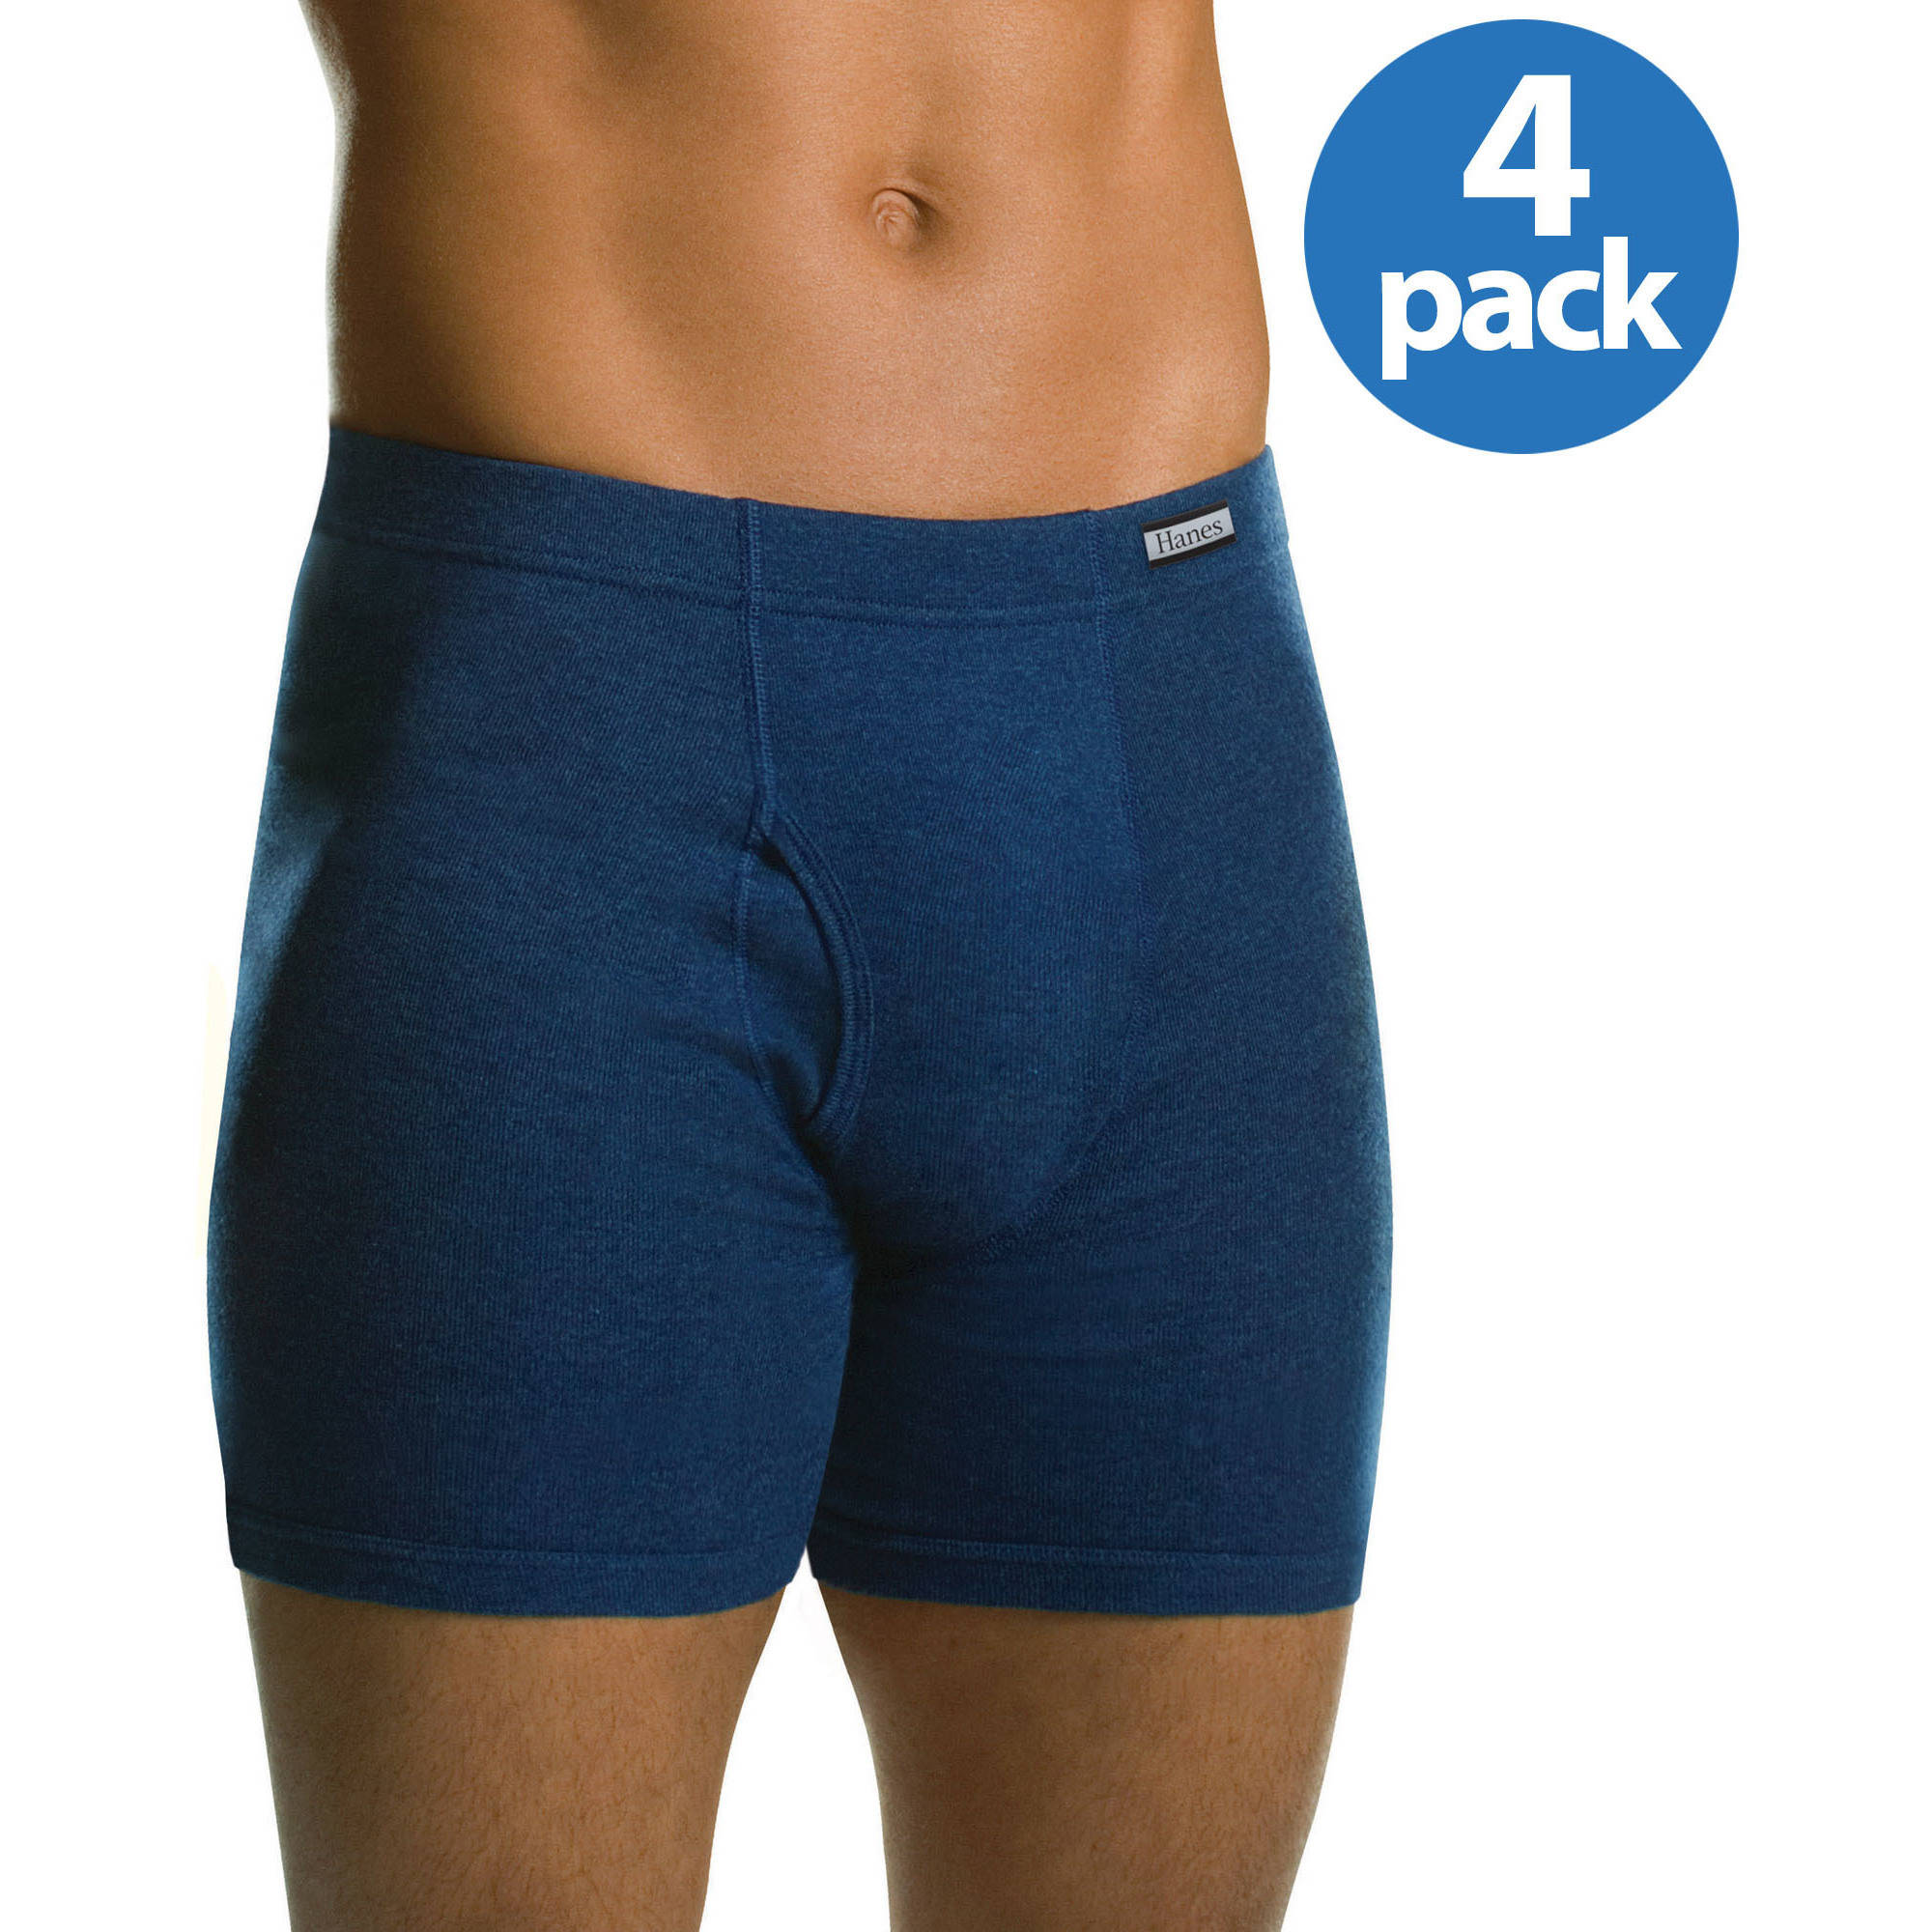 Hanes Big Men's FreshIQ ComfortSoft Waistband Boxer Brief 4-Pack, 3XL